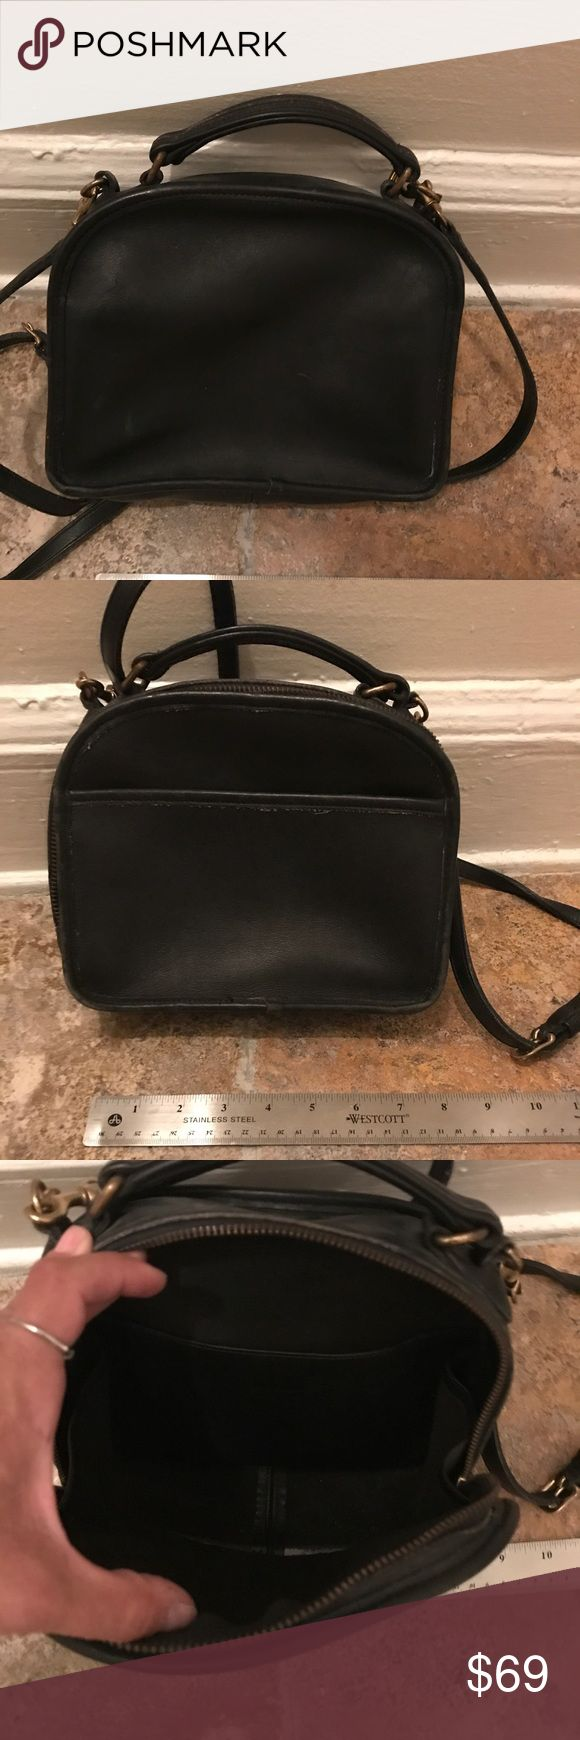 Vintage. Coach Made in USA black leather bag Remember when coach was made in USA?!  Cute bag I think it was called lunchbox. Black leather. More than twenty years old but in great condition for its age. Gently used by me years ago.  Inside is spotless and all leather with no lining. Coach Bags Satchels